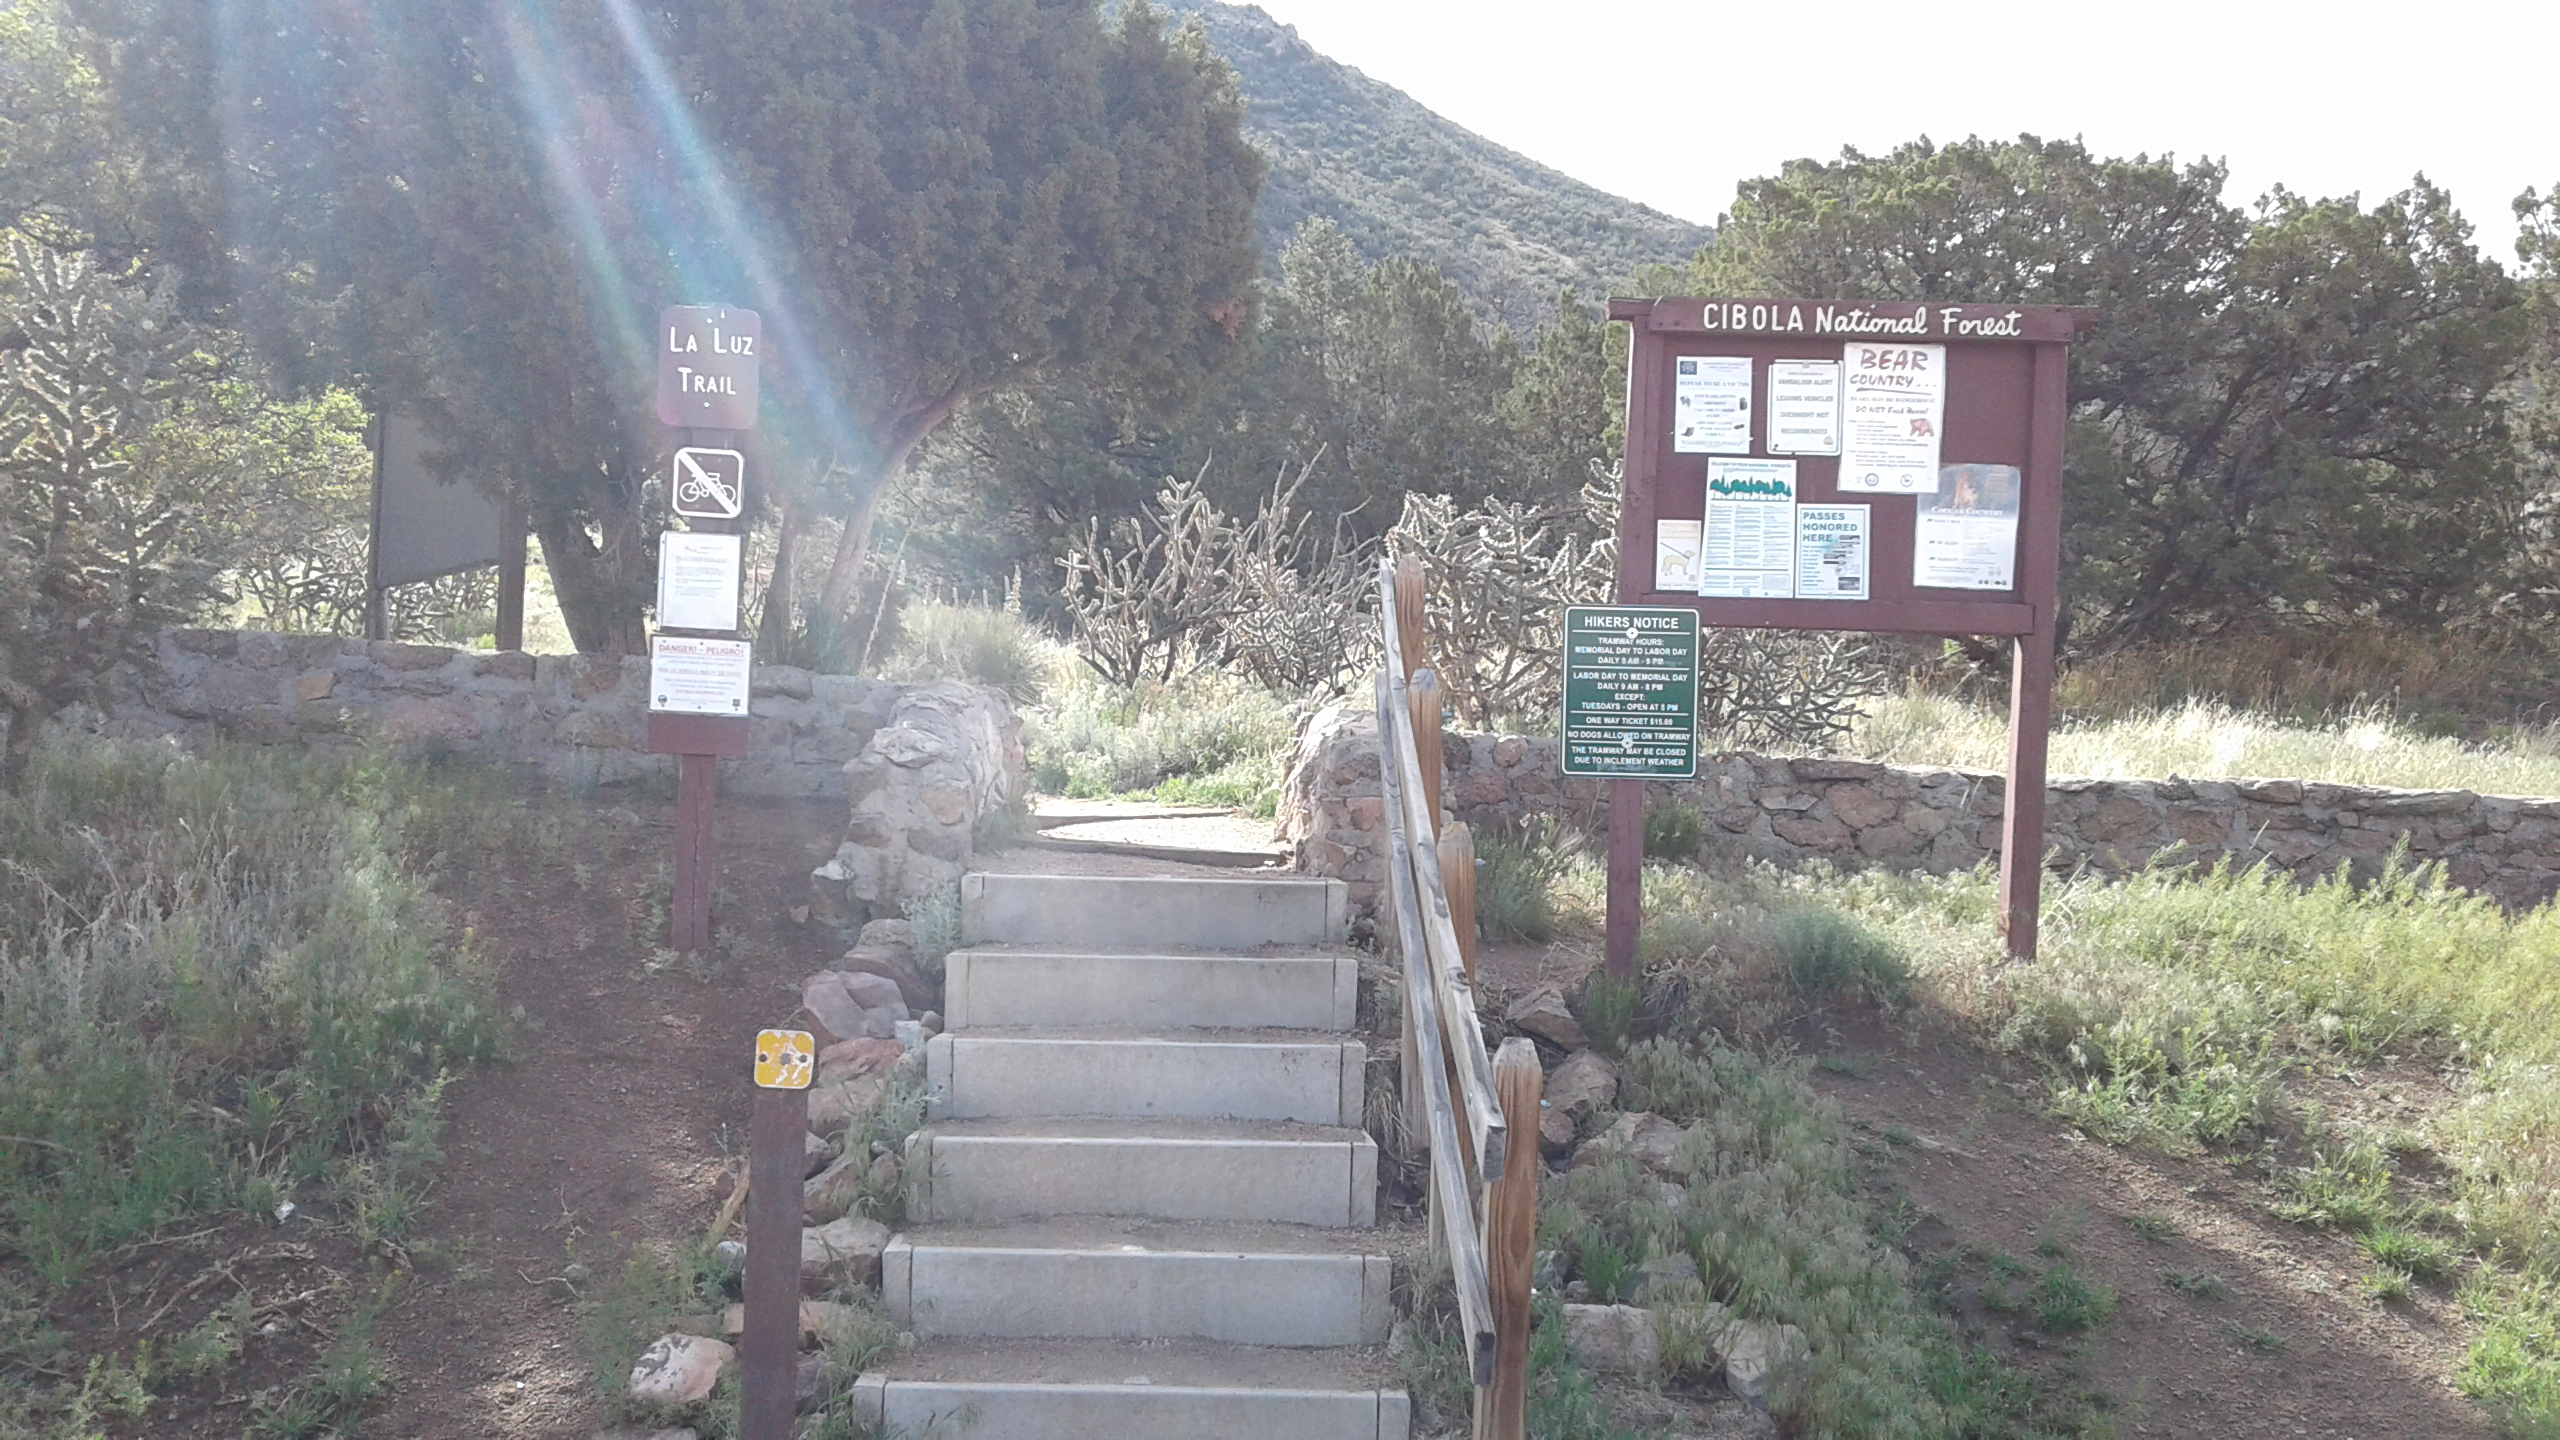 La Luz stairway to the trail